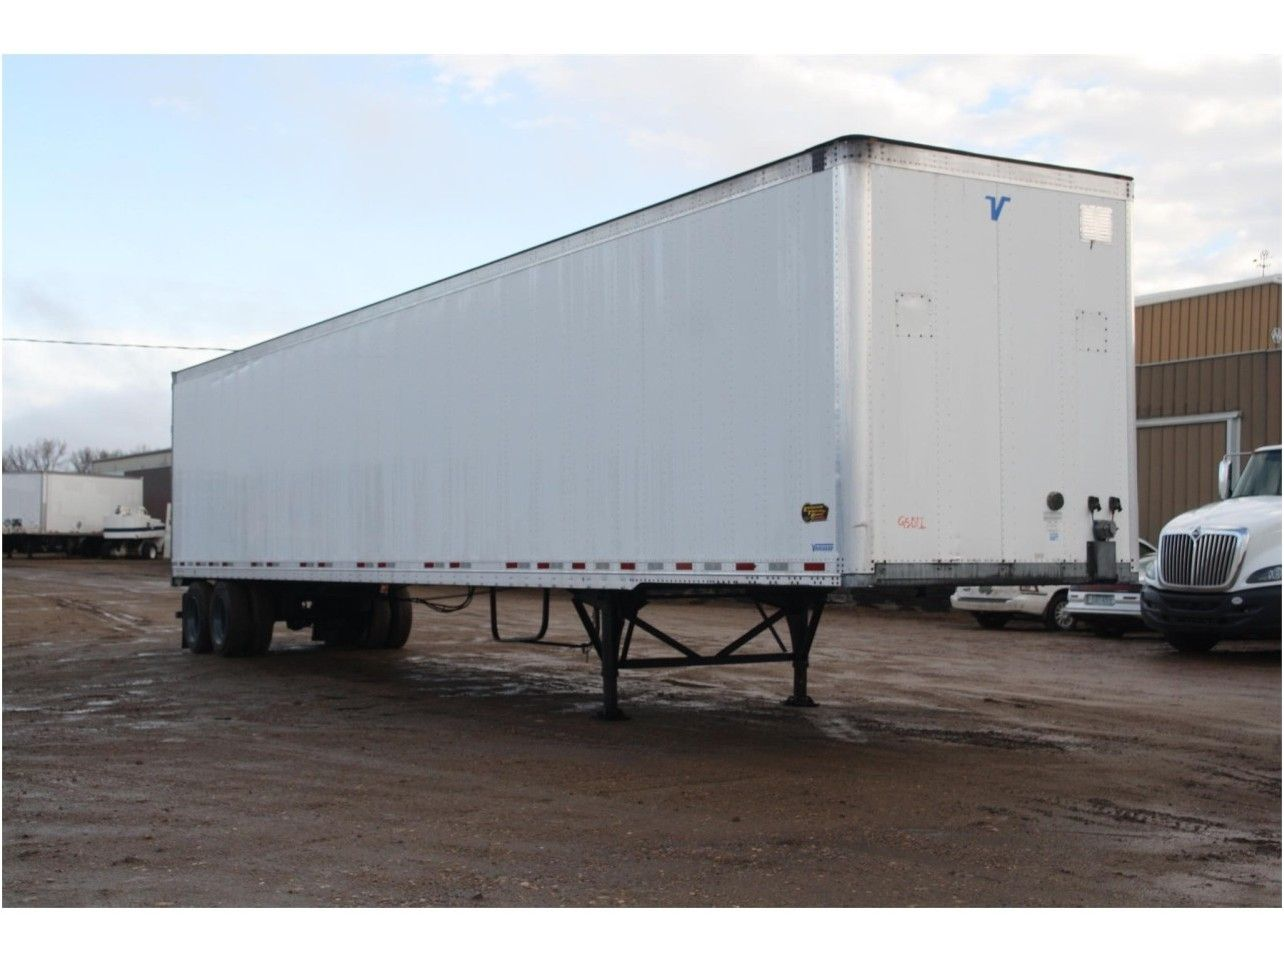 Used Trailer Rental for most is the best option. Check out